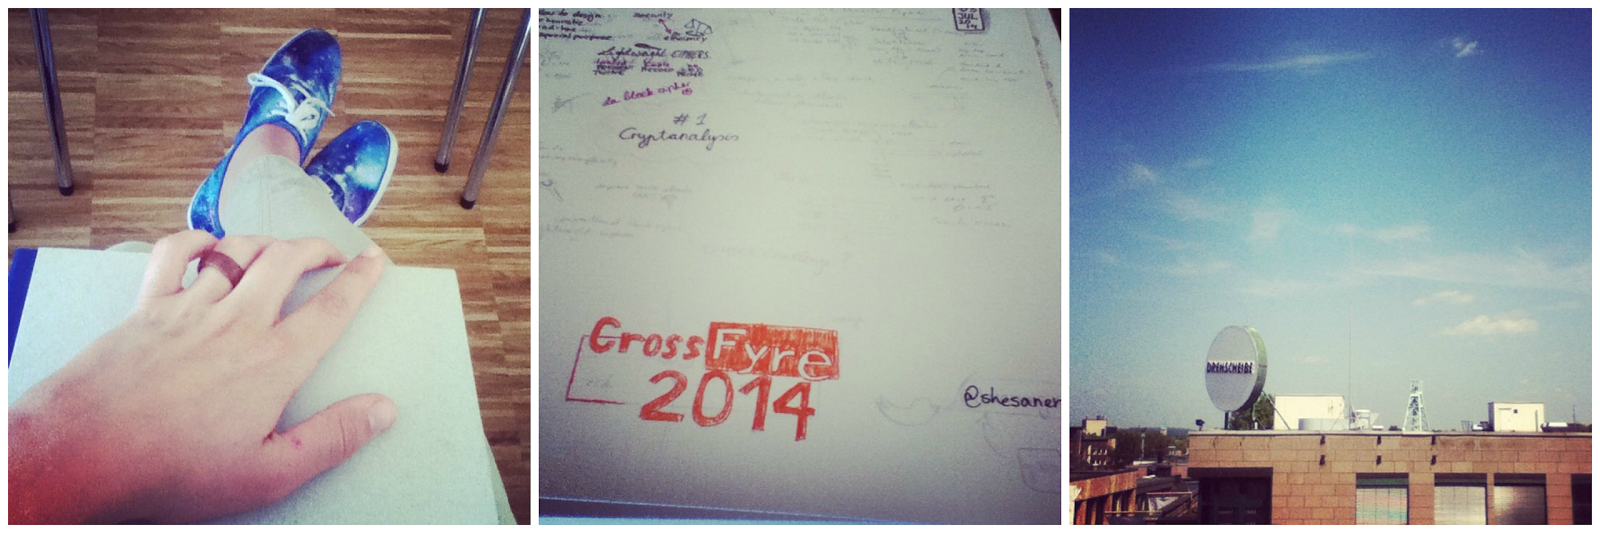 Cross Fyre Workshop 2014 in Bochum